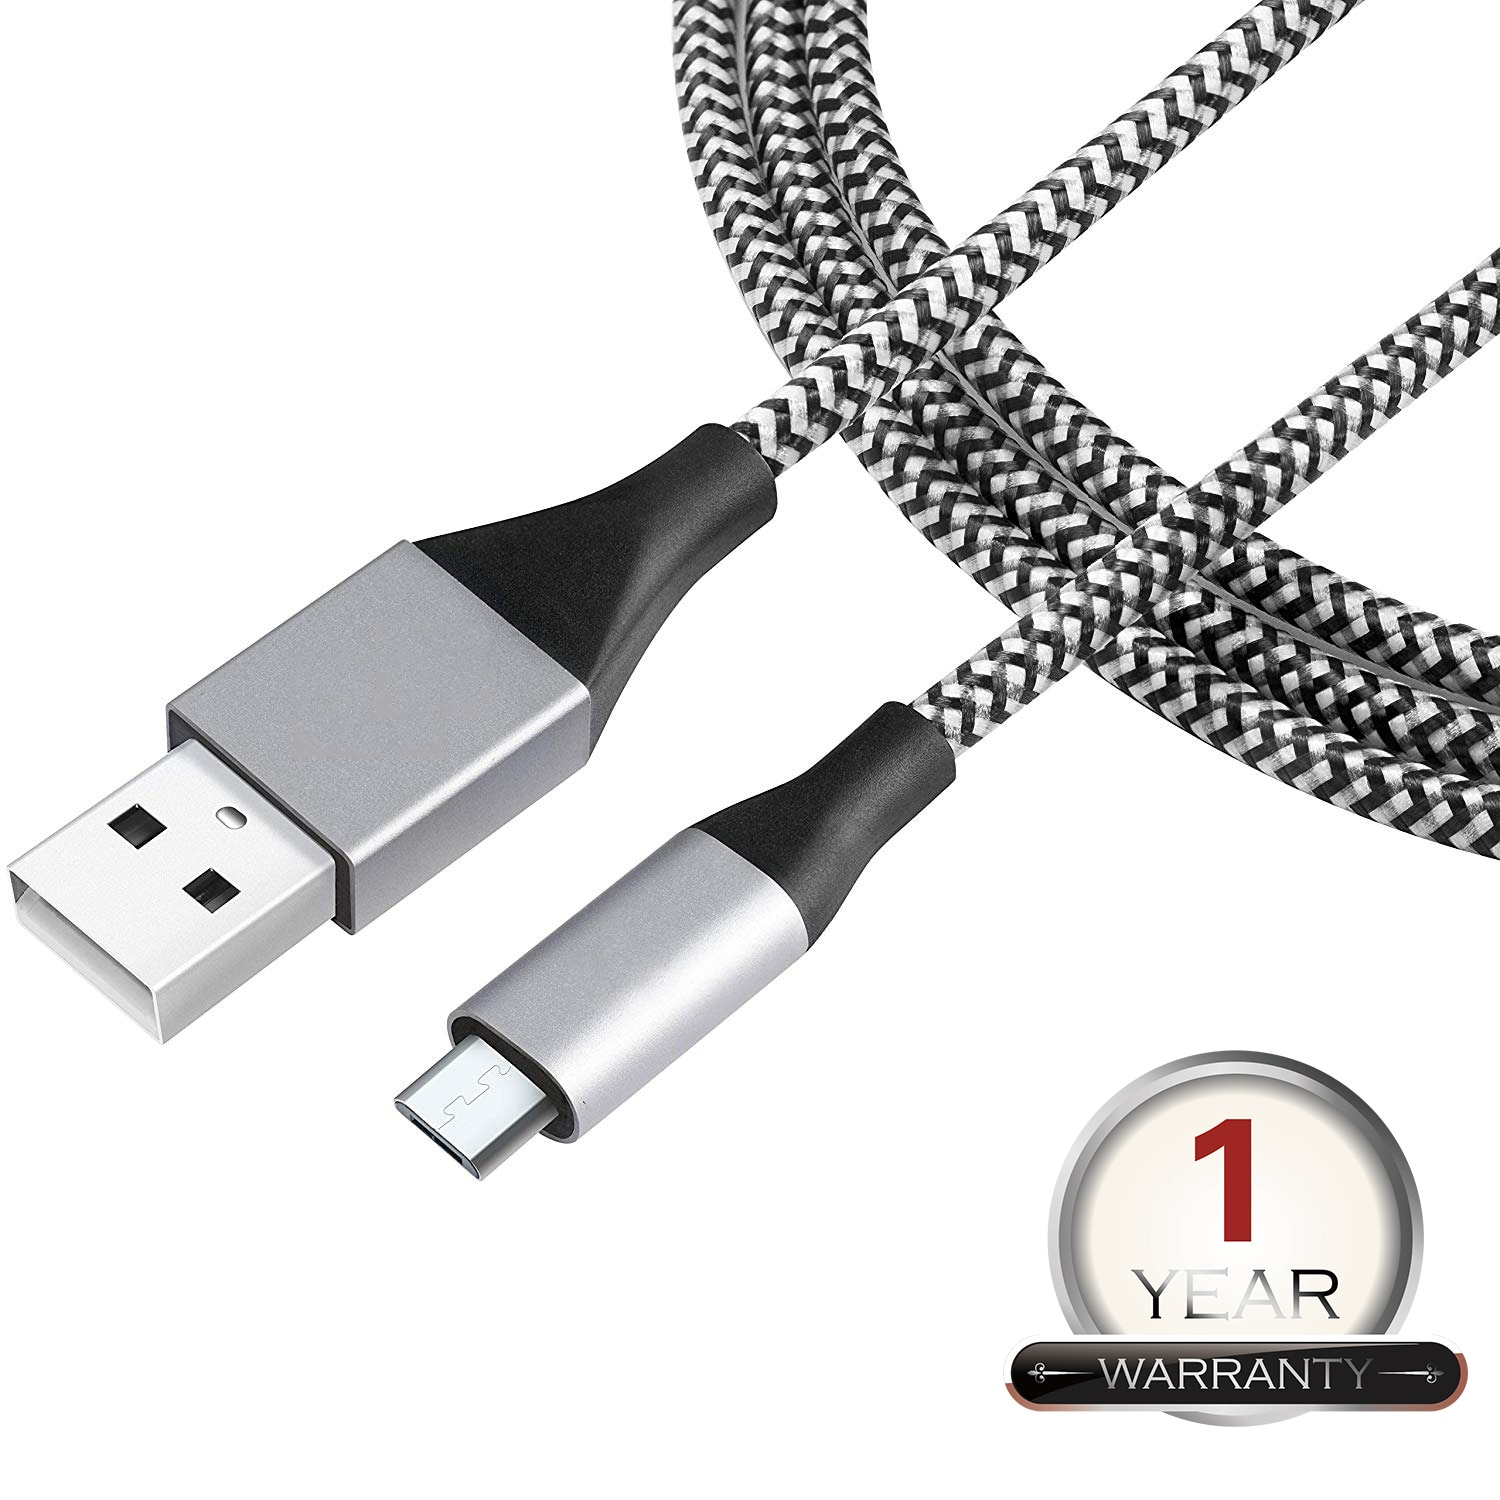 LIRAMARK Nylon Braided Original Tough Micro USB Data Cable with Super Fast Charging up to 2.4Amps All Mobile Devices and Tablets ( Silver ) ( 1m / 3.3 feet )